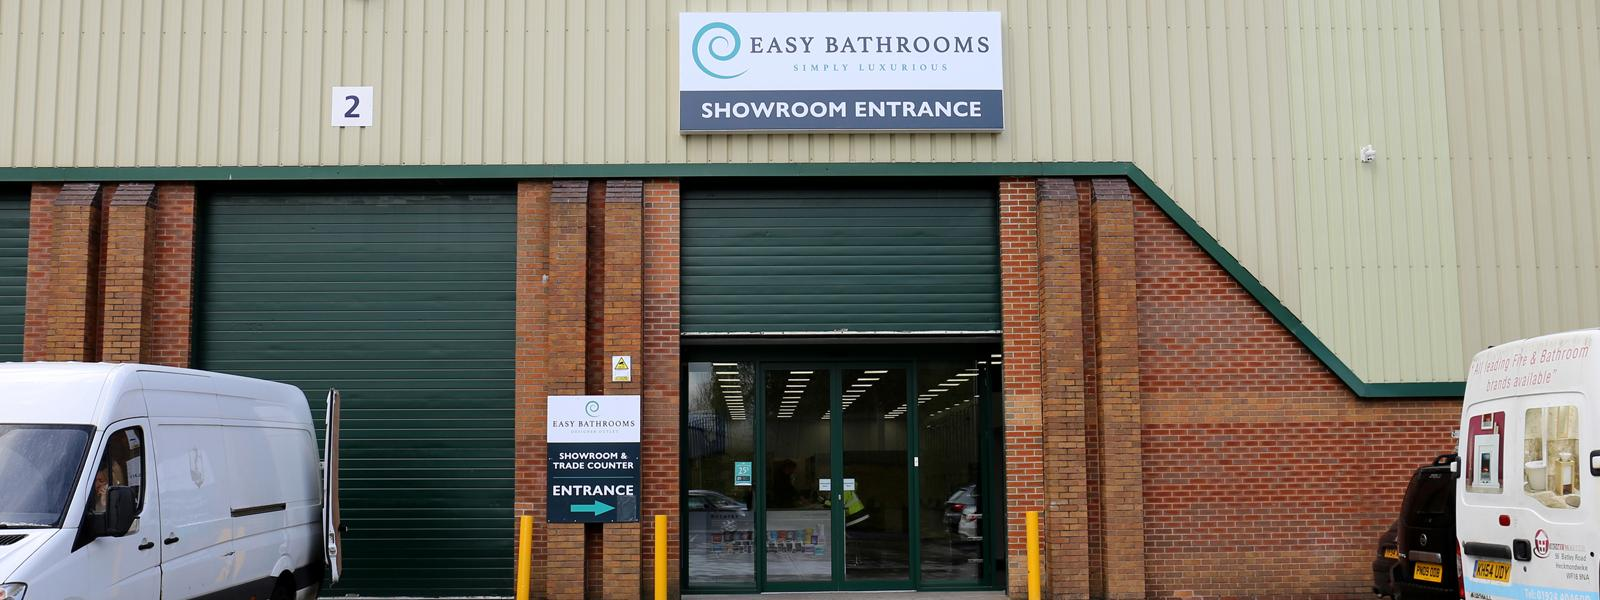 Bathroom supplier presses ahead with plans to become top specified newbuildbrand